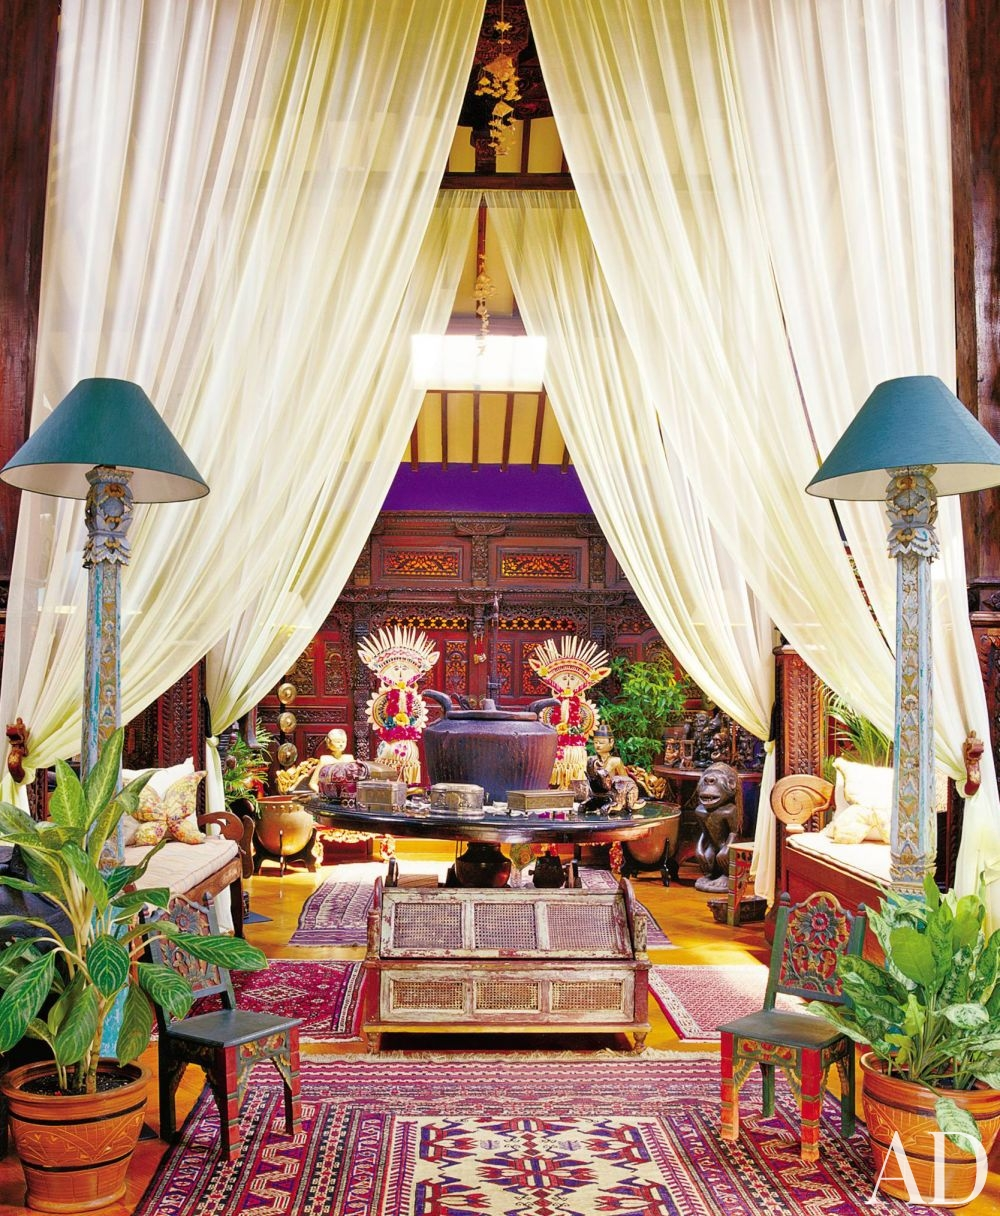 exotic-living-room-moroccan-decor-better-decorating-bible-blog-colorful-persian-egyptian-african-how-to-leksmono-santoso-designs-jakarta-indonesia-200712_1000-watermarked